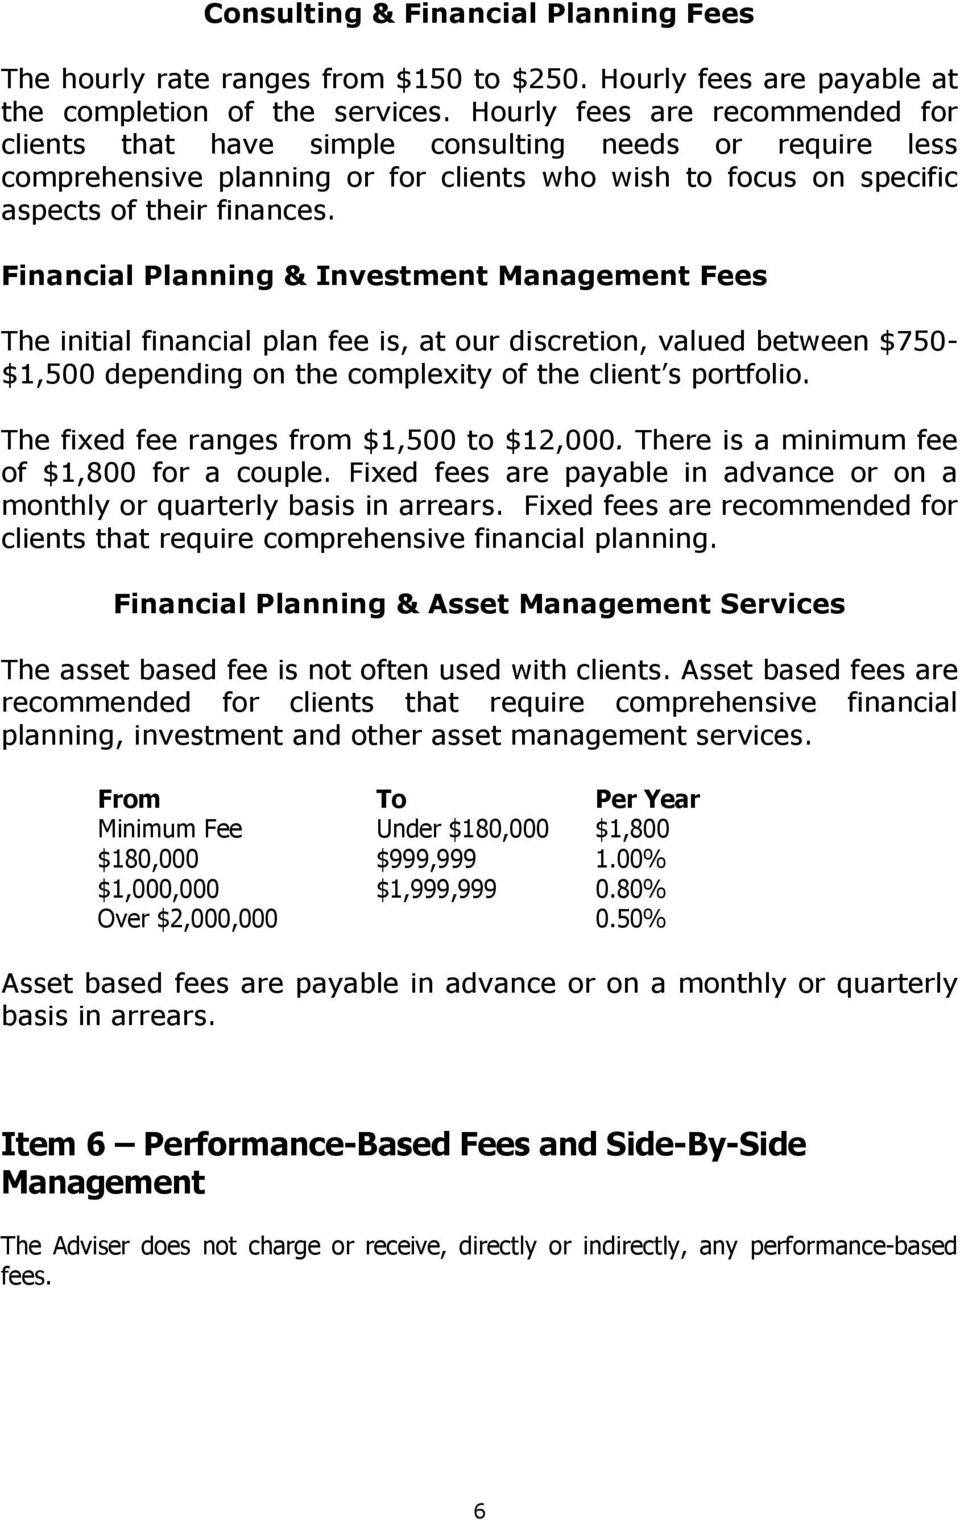 Financial Planning & Investment Management Fees The initial financial plan fee is, at our discretion, valued between $750- $1,500 depending on the complexity of the client s portfolio.